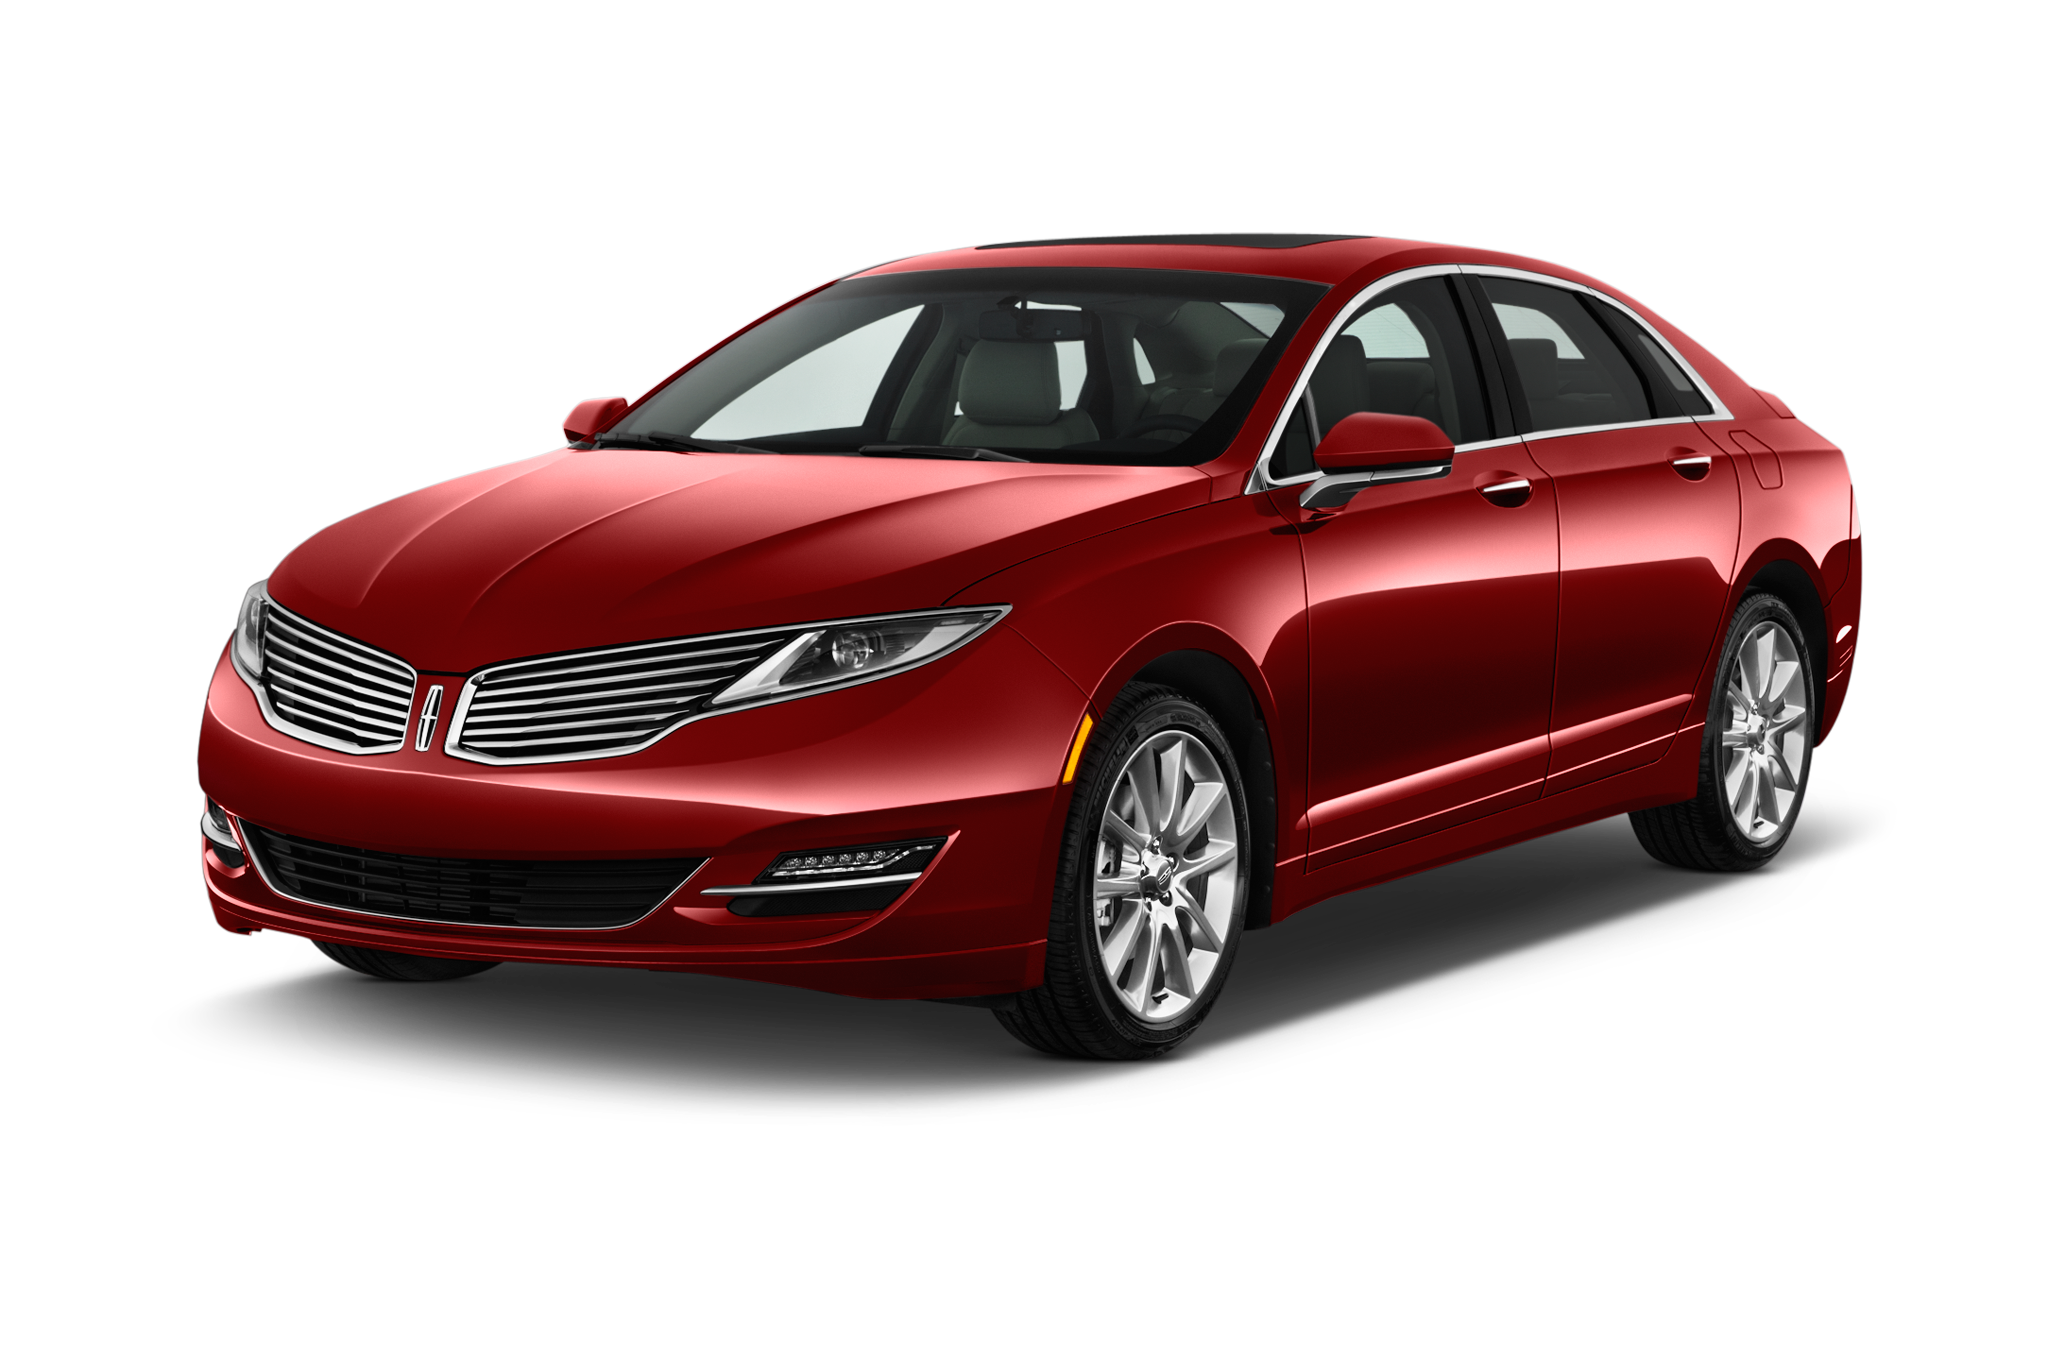 Lincoln Mkz Hd PNG Image